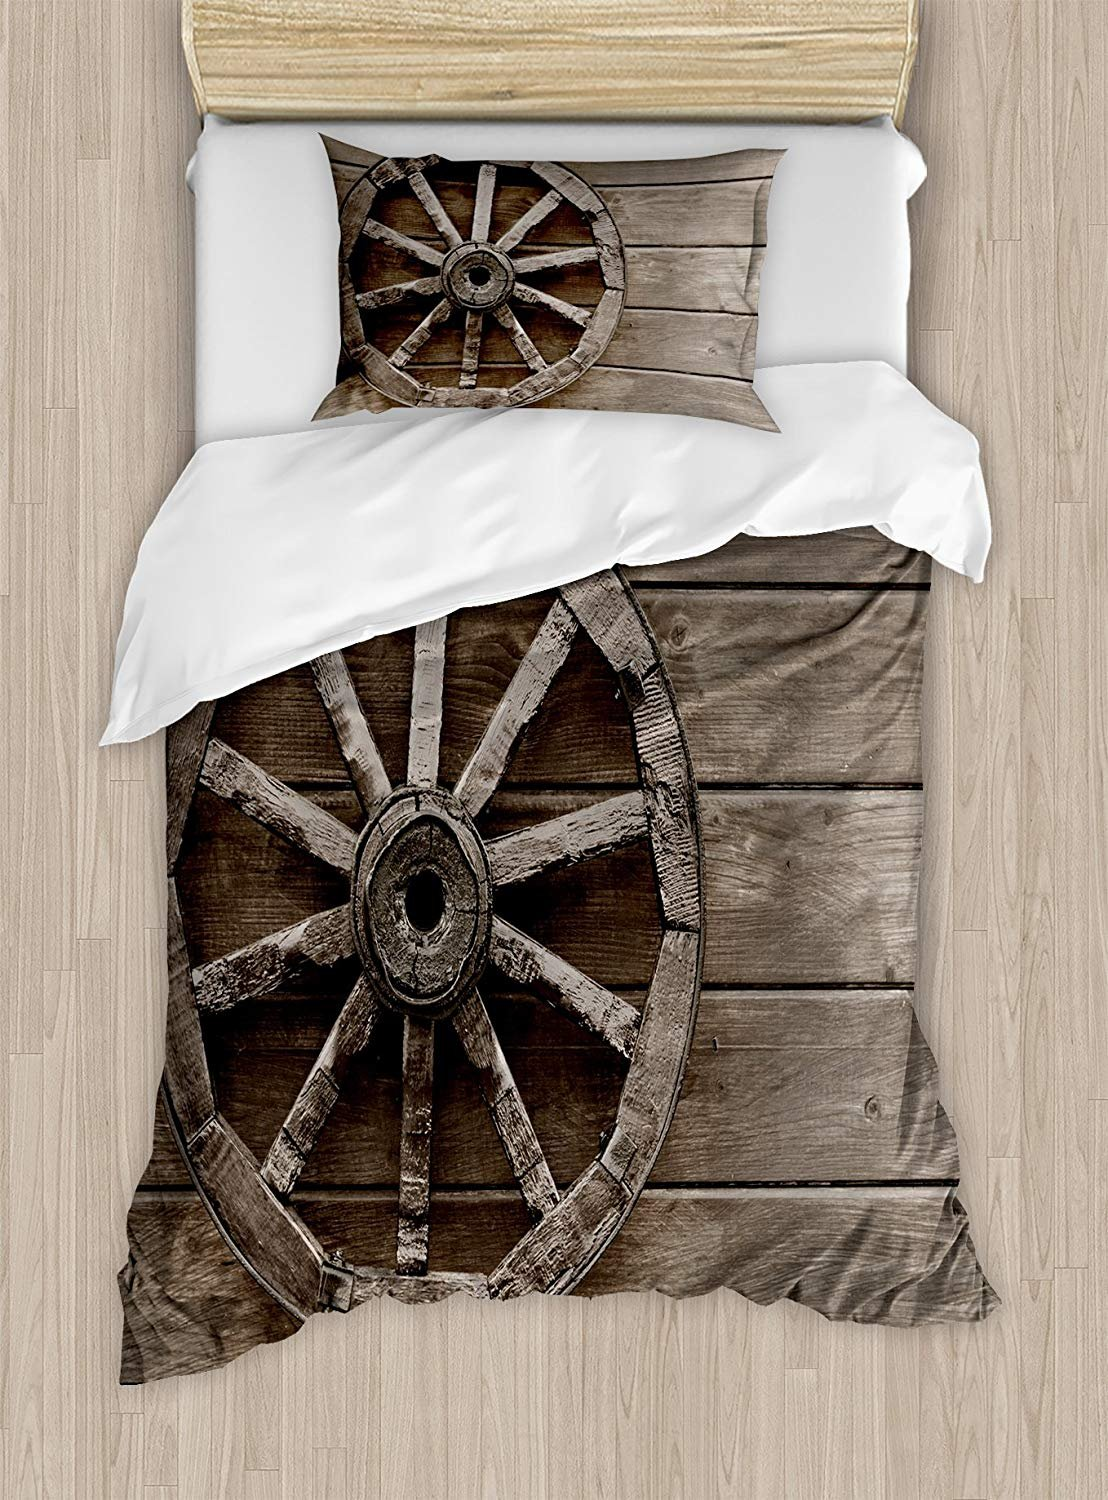 Twin XL Extra Long Bedding Set,Barn Wood Wagon Wheel Duvet Cover Set,Antique Aged Carriage Vehicle Wheel on the Wall of Barn Grunge Western,Include 1 Flat Sheet 1 Duvet Cover and 2 Pillow Cases